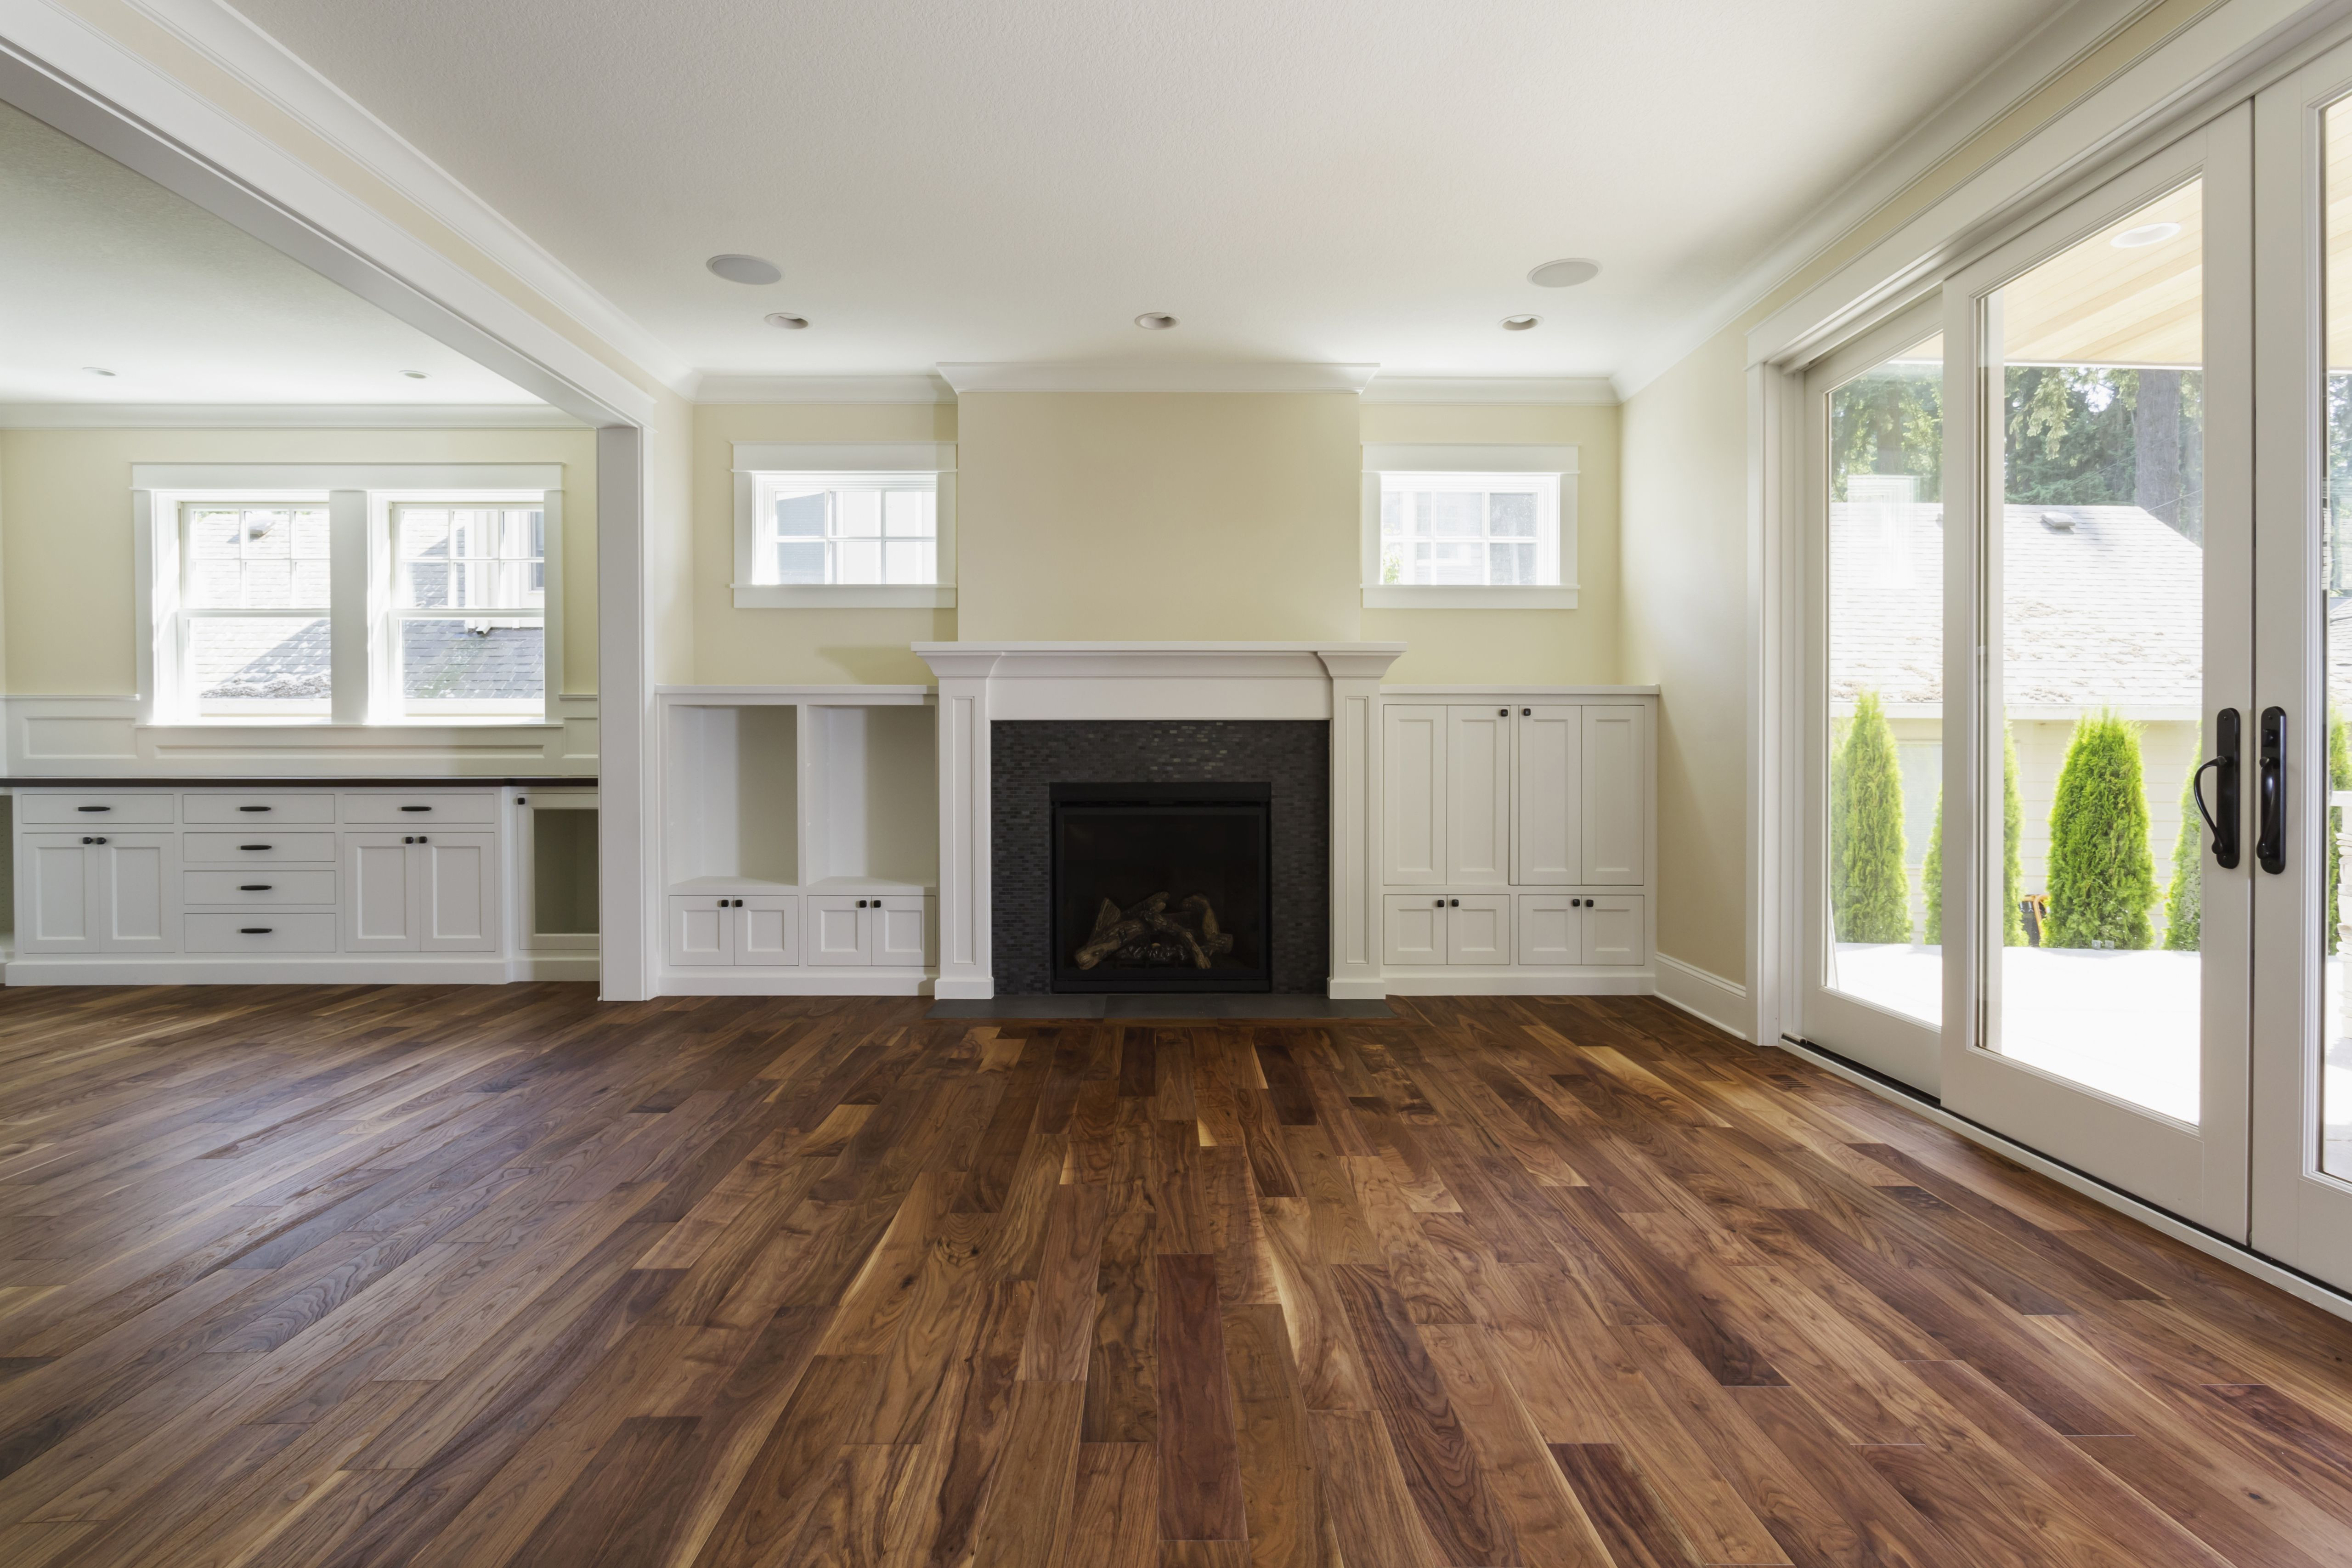 how to install engineered hardwood flooring on concrete slab of the pros and cons of prefinished hardwood flooring for fireplace and built in shelves in living room 482143011 57bef8e33df78cc16e035397